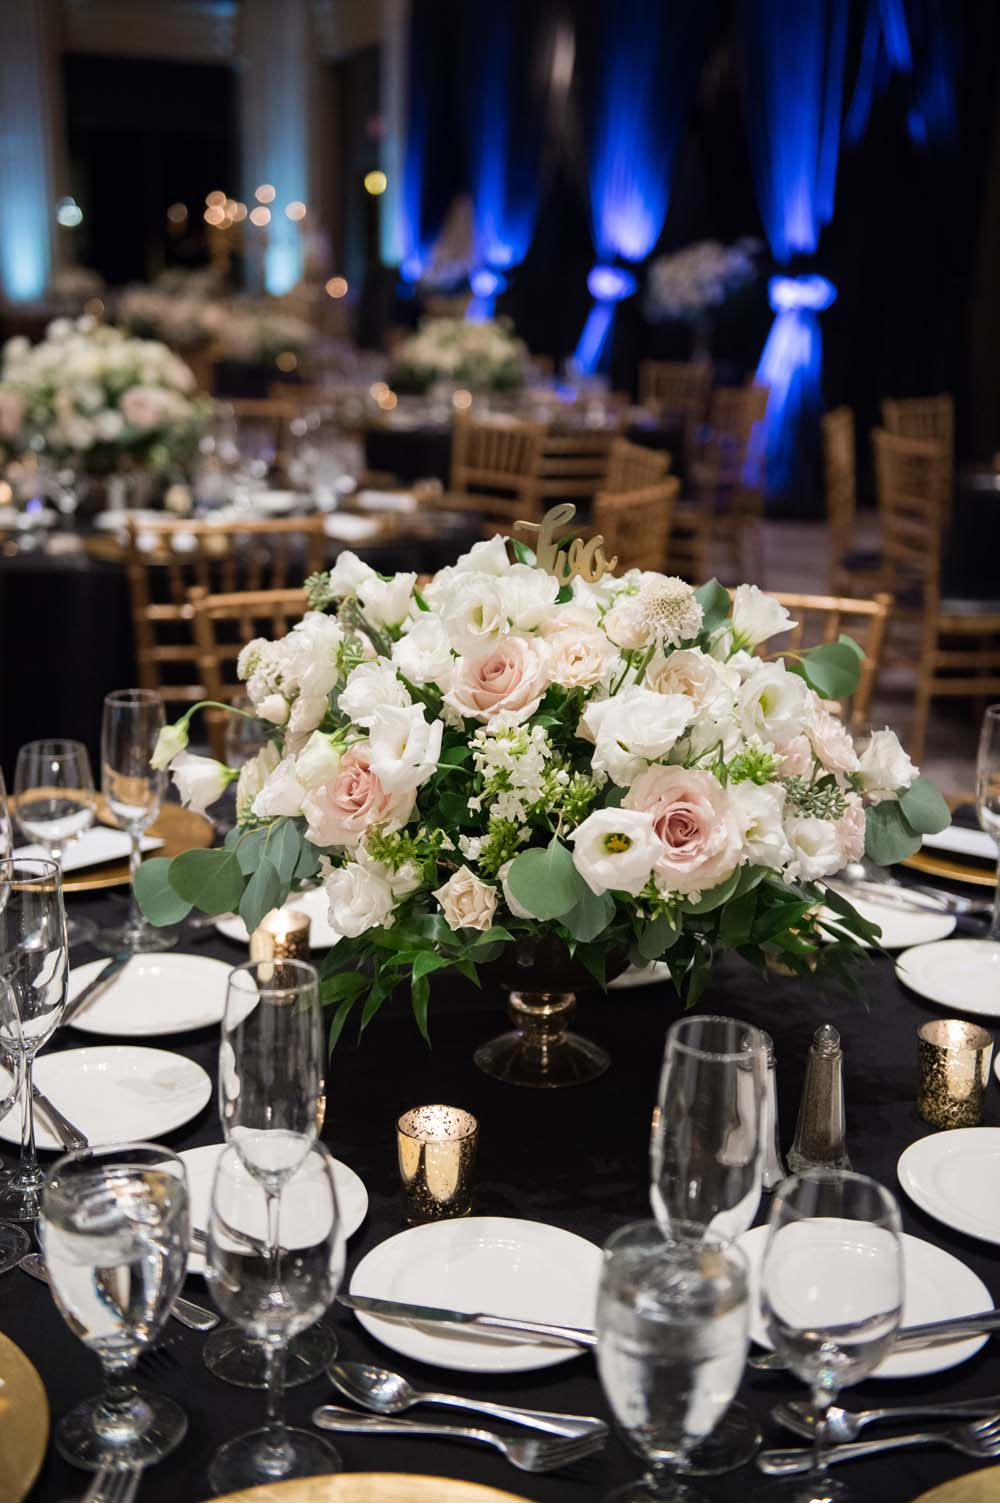 A Classic Vintage inspired Wedding at the One King West in Toronto - Table Centrepieces